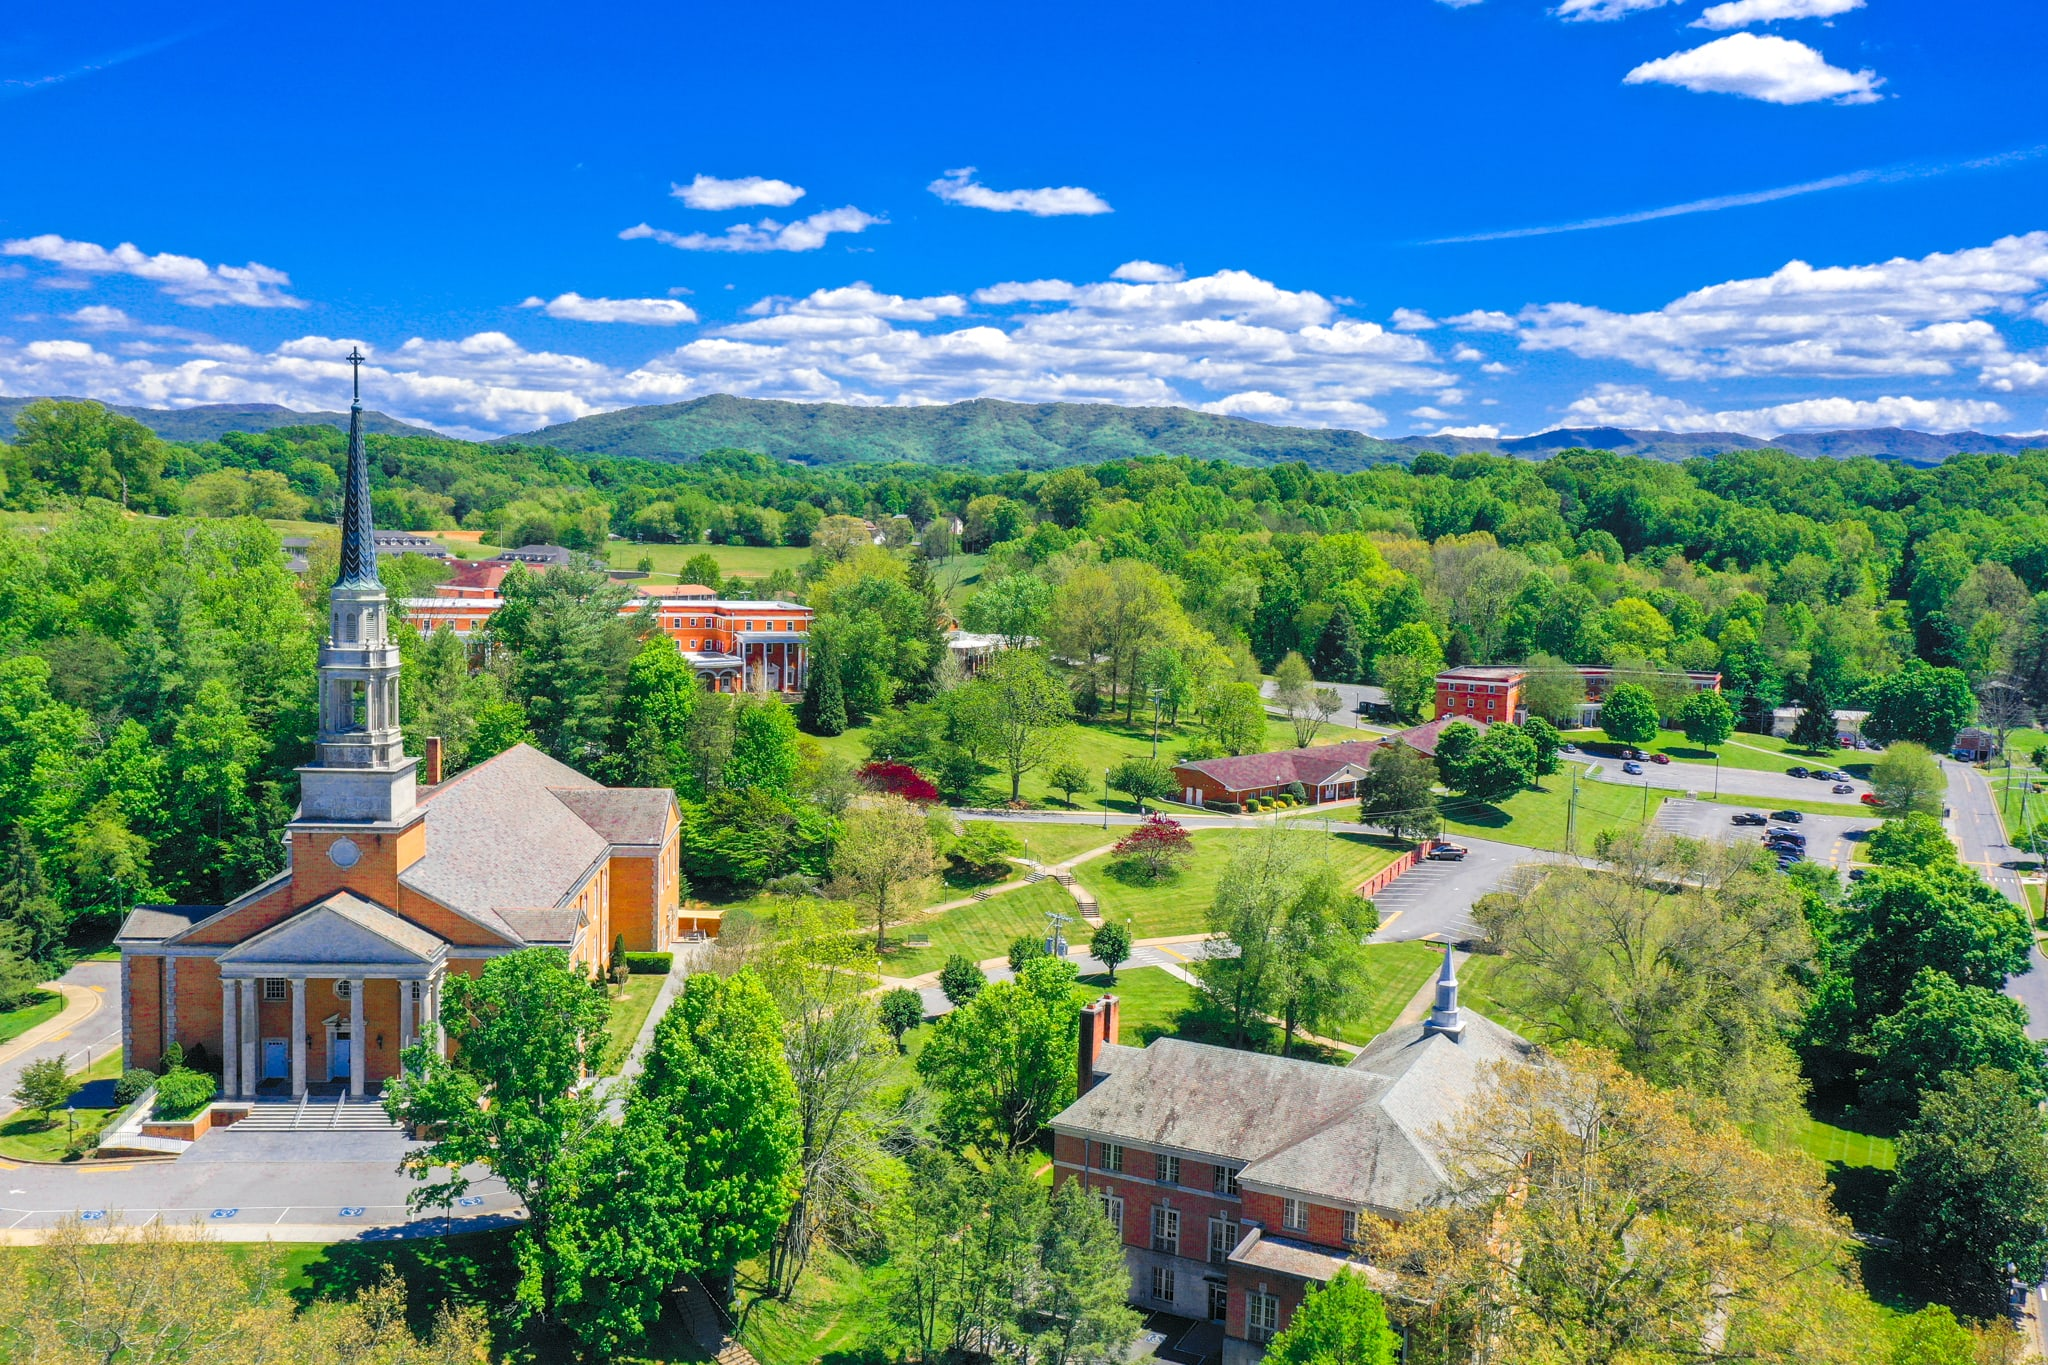 An overlook shot of campus focused on Seeger Chapel